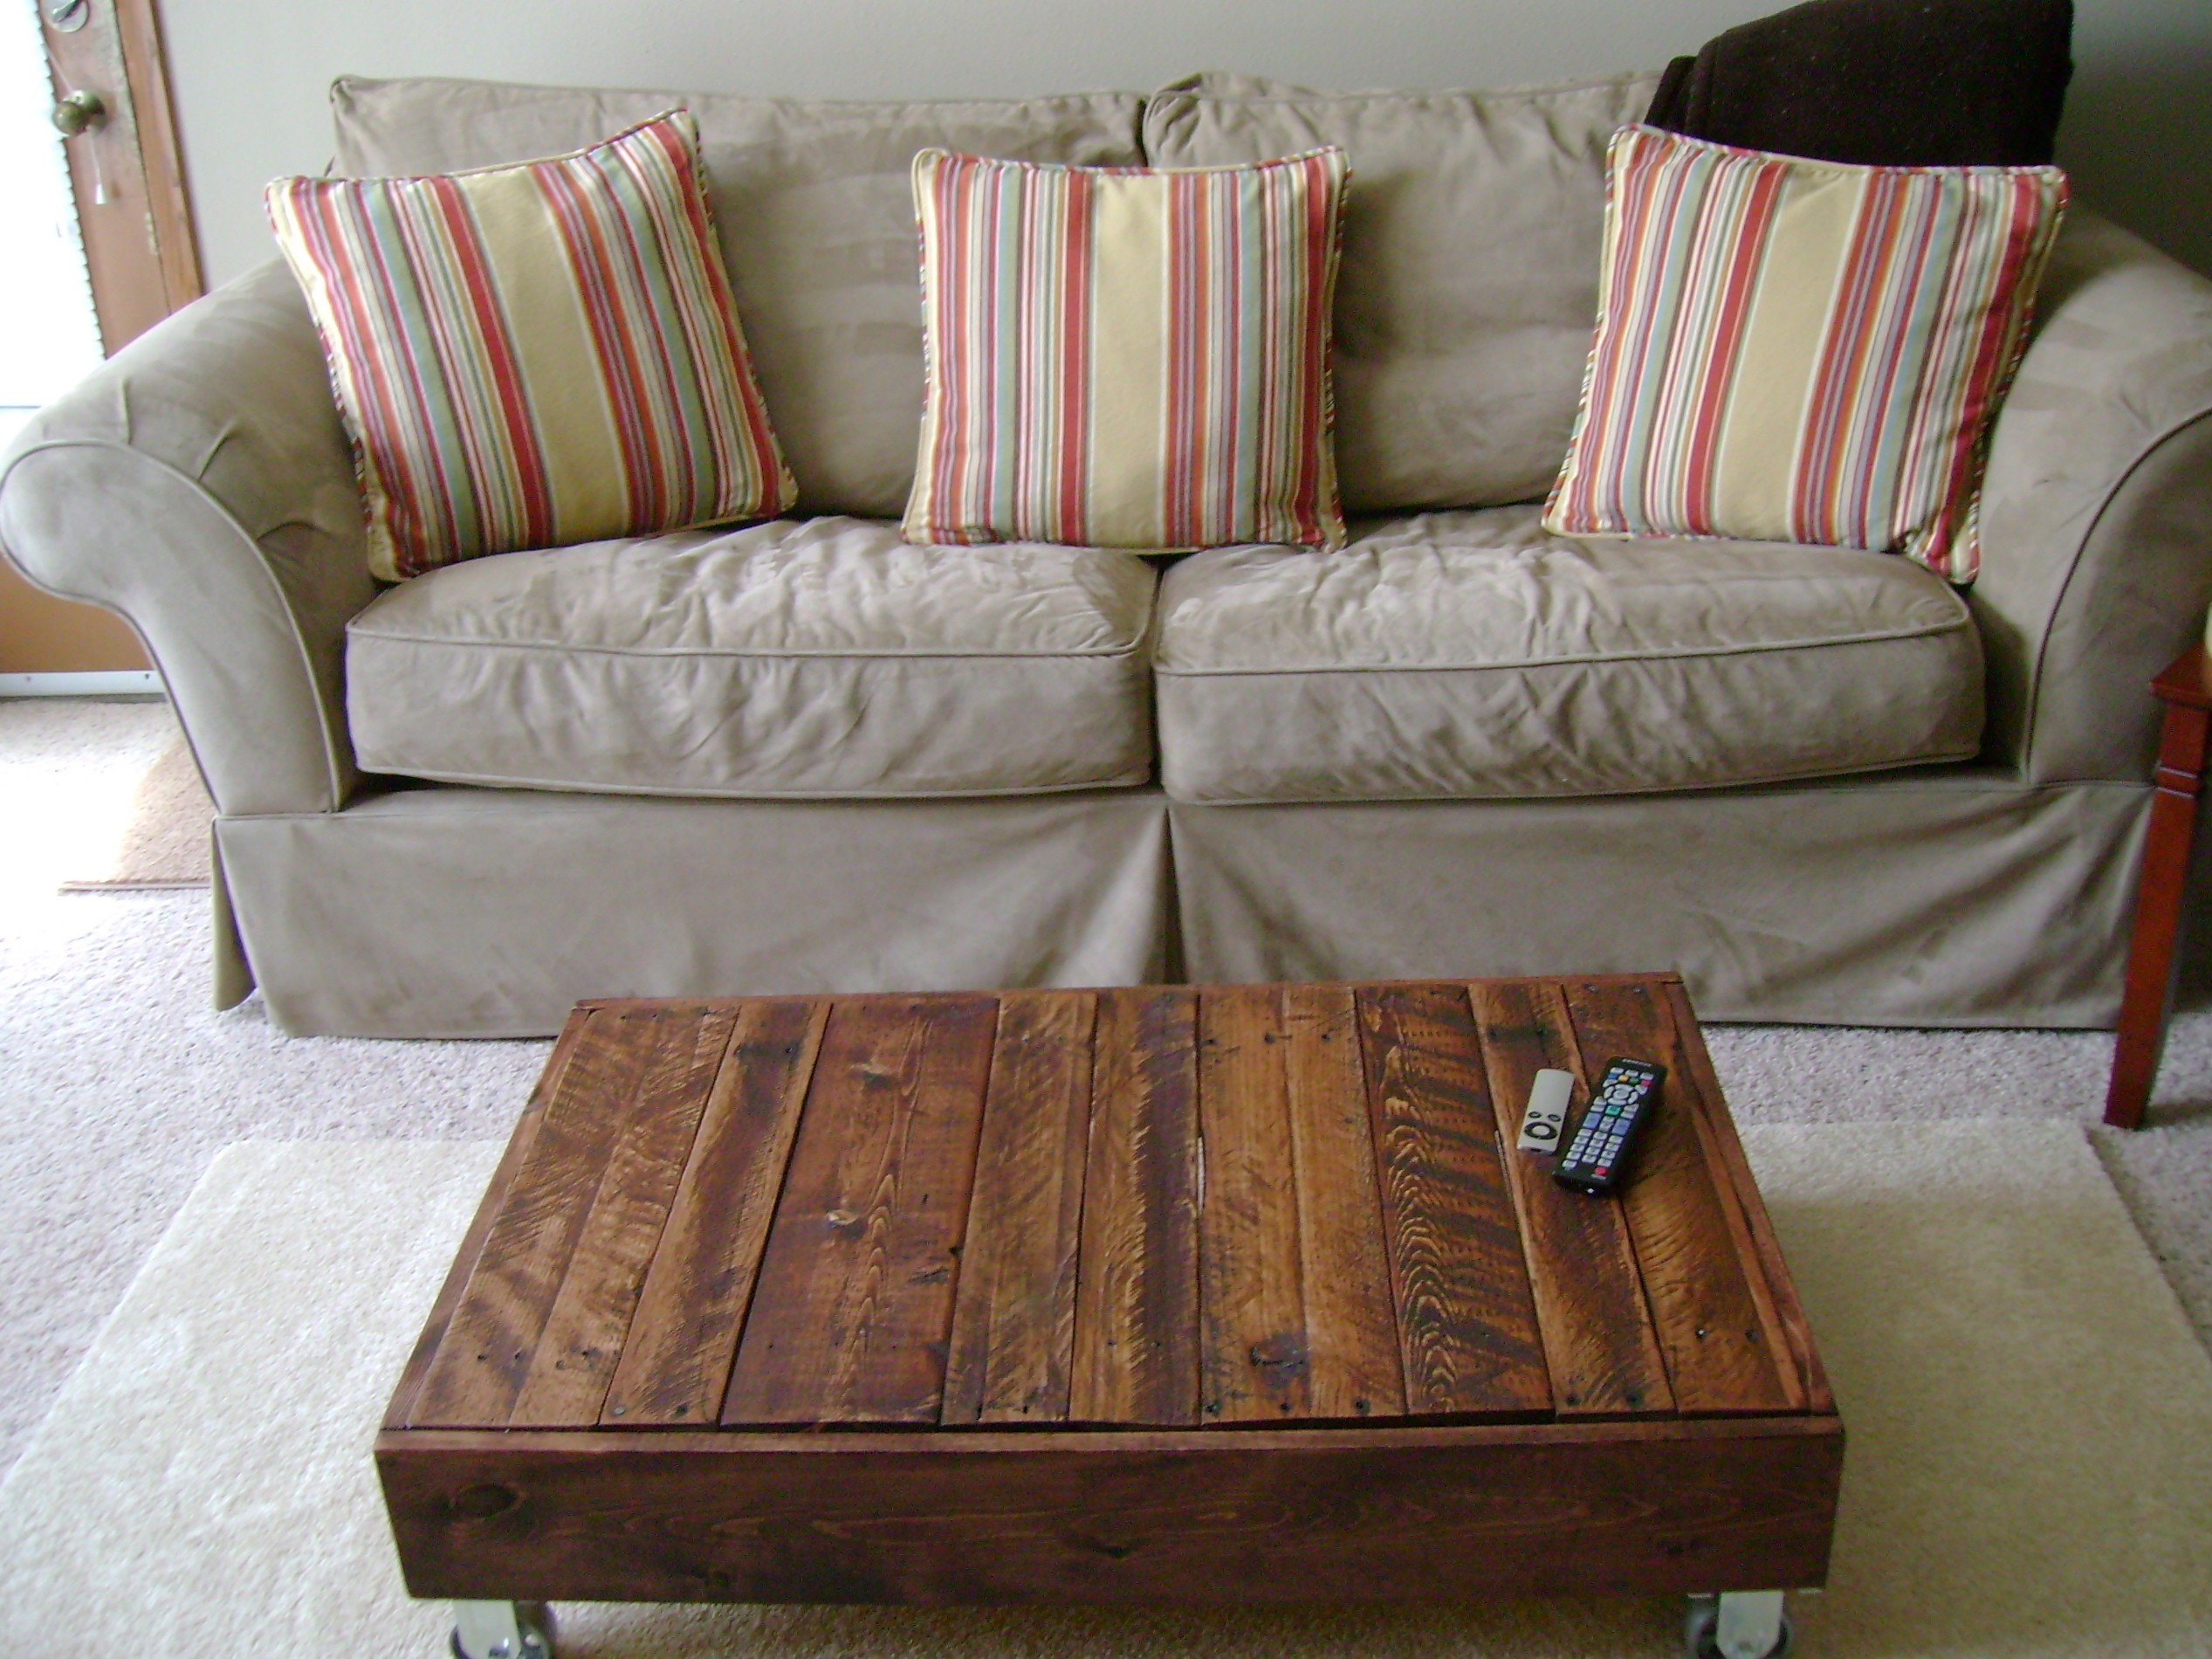 Simple low cost diy brown wooden pallet coffee table